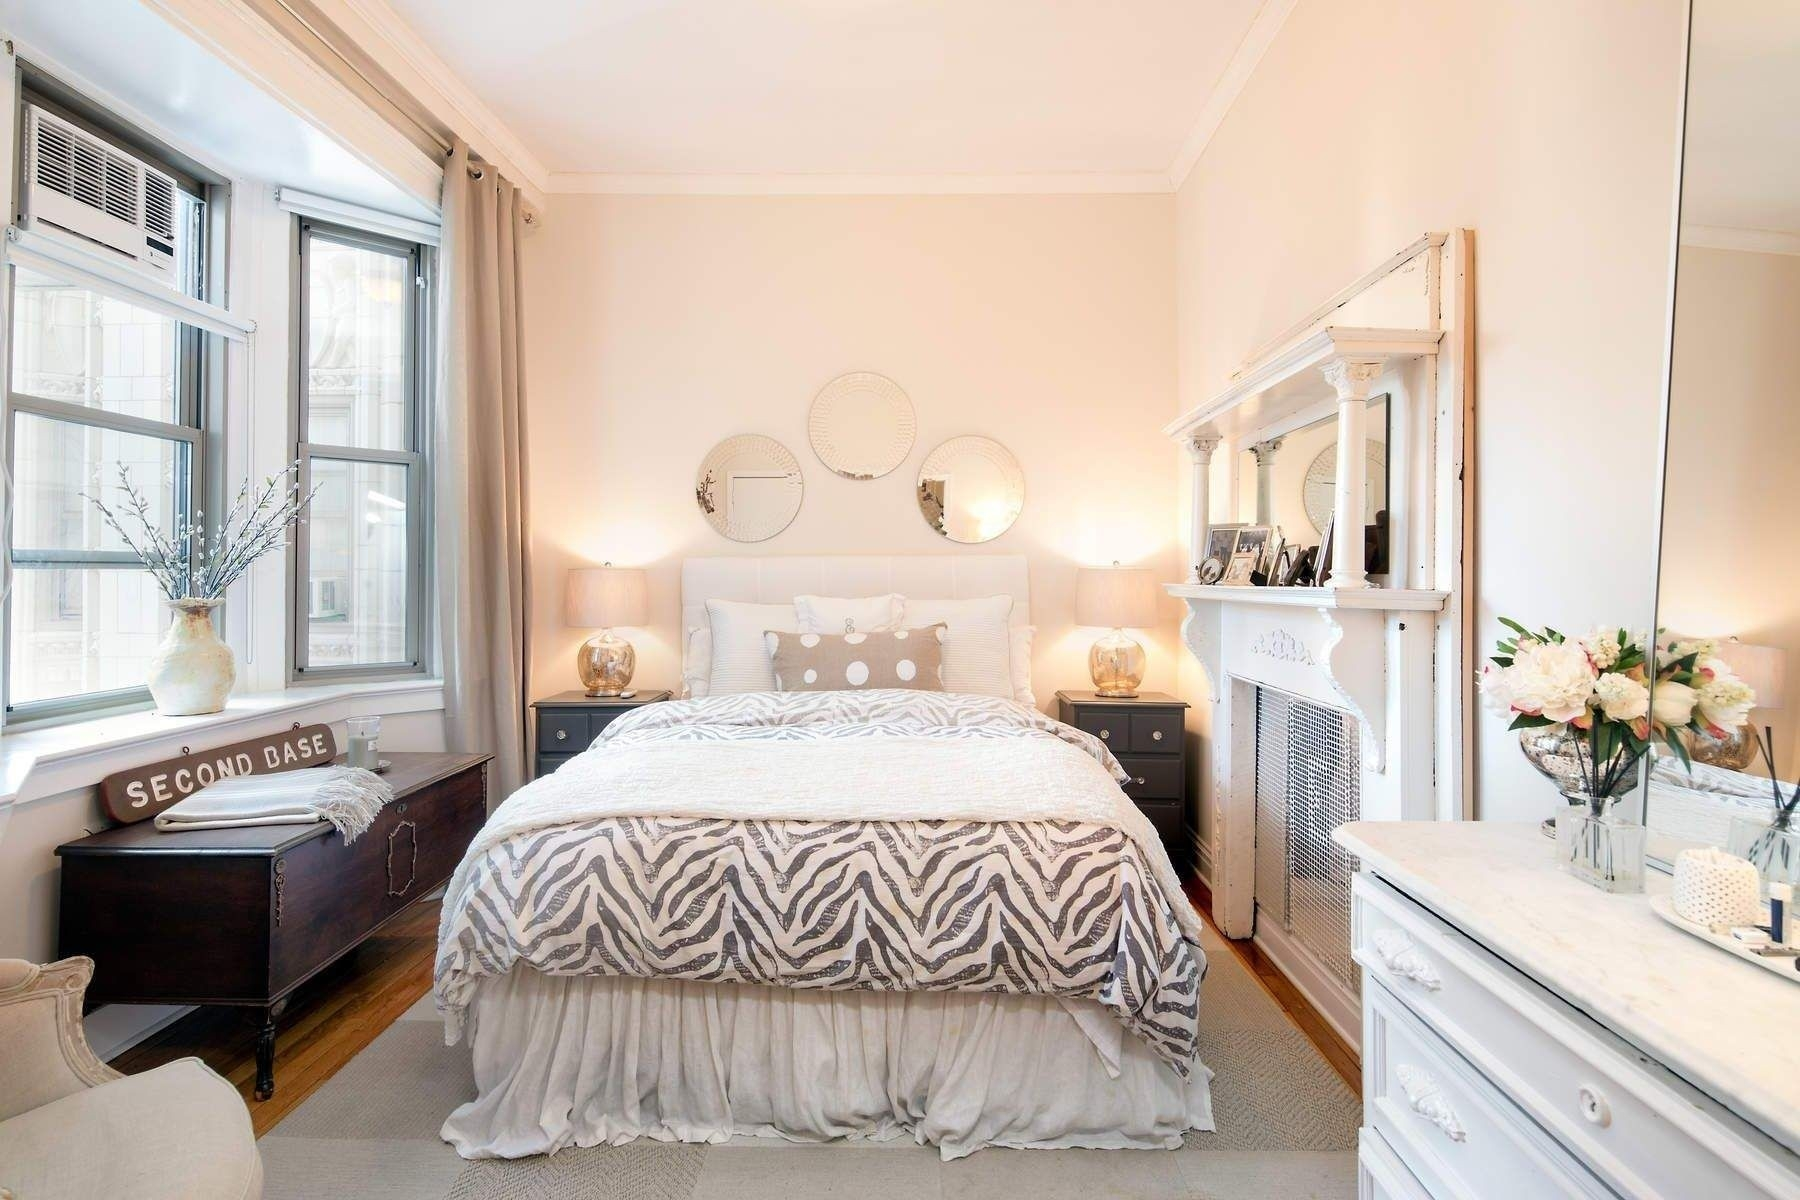 6. Condominiums for Sale at 36 Gramercy Park East, 7W Gramercy Park, New York, NY 10003